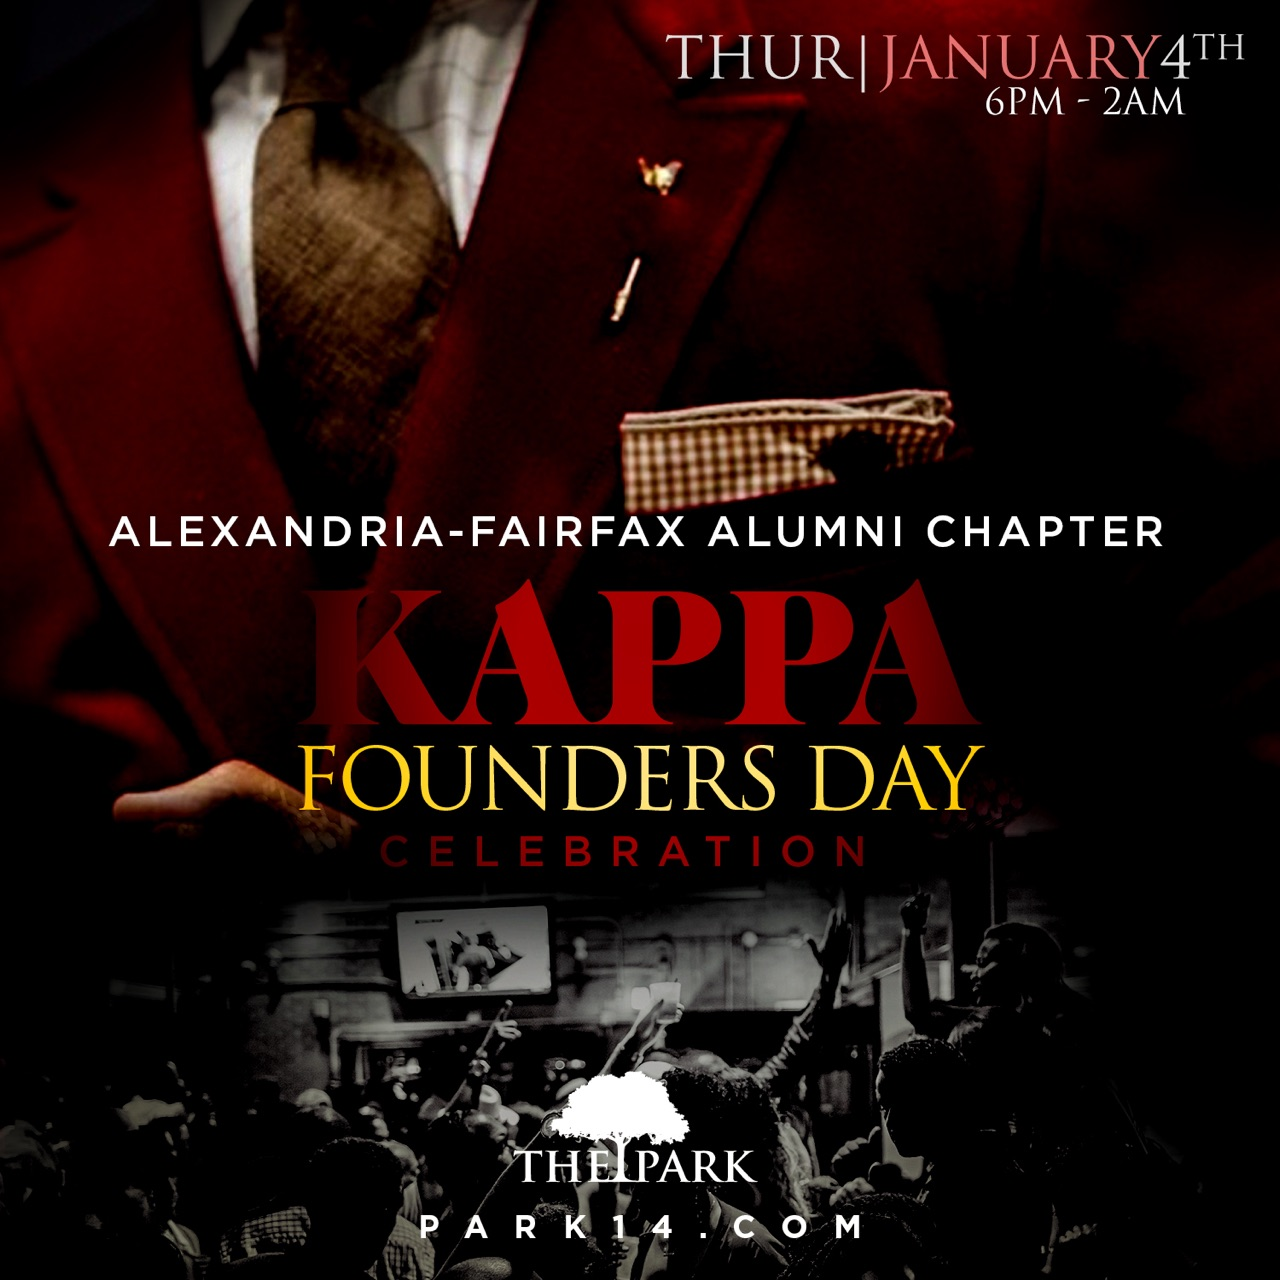 Kappa Founder's Day